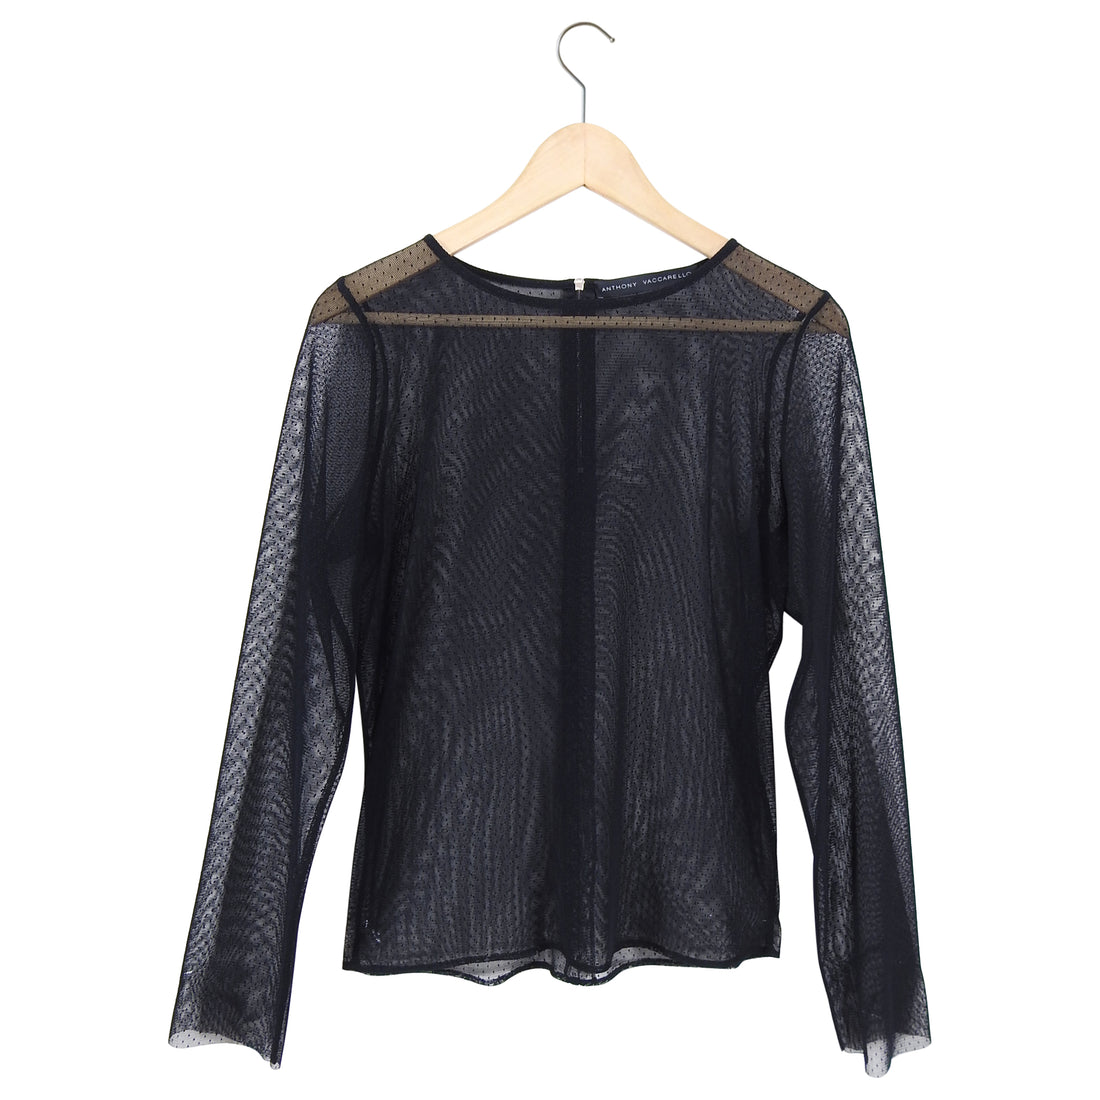 Anthony Vacarello Black Mesh Sheer Long Sleeve Top - L